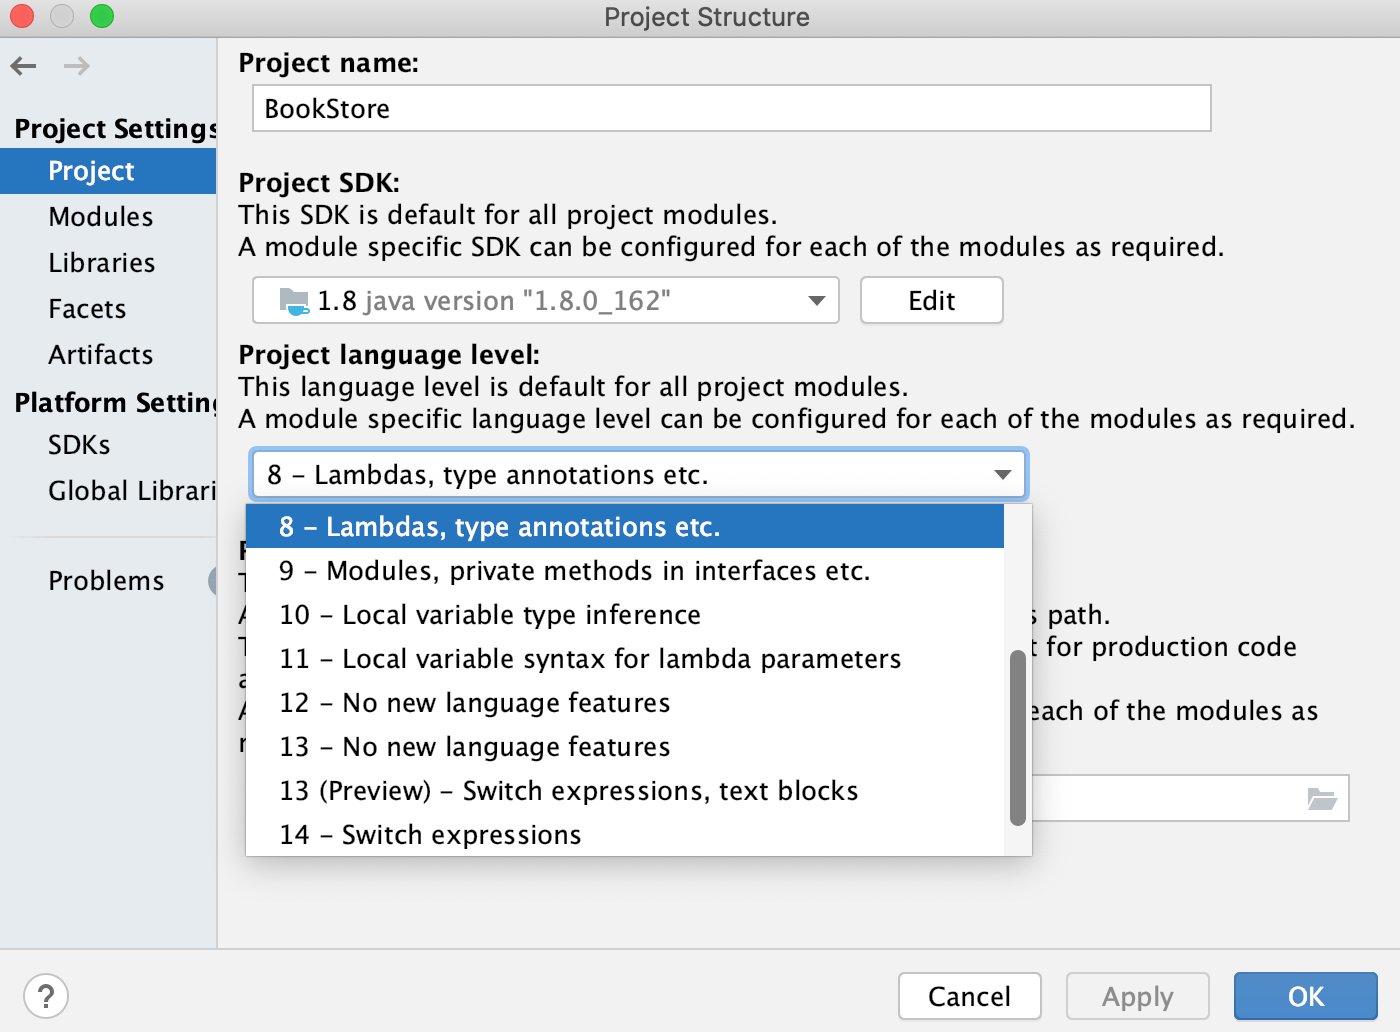 the project structure: Project